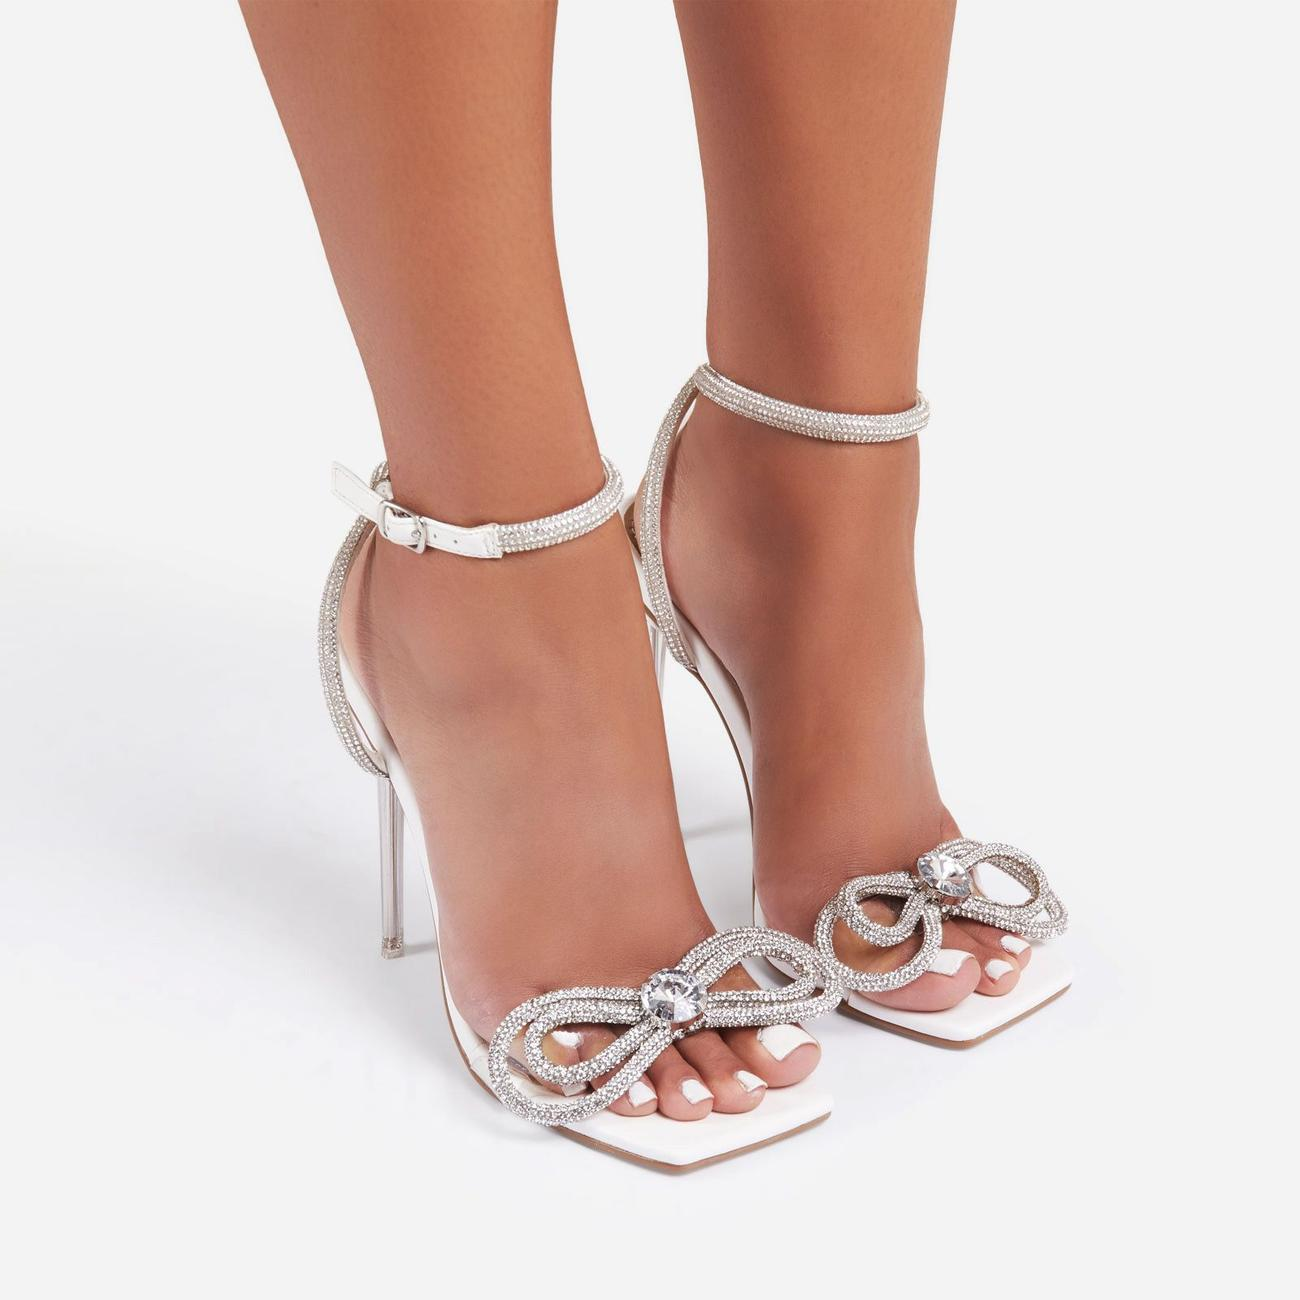 Sugar-Coated Diamante Bow Detail Square Toe Clear Perspex Heel In White Faux Leather Image 3